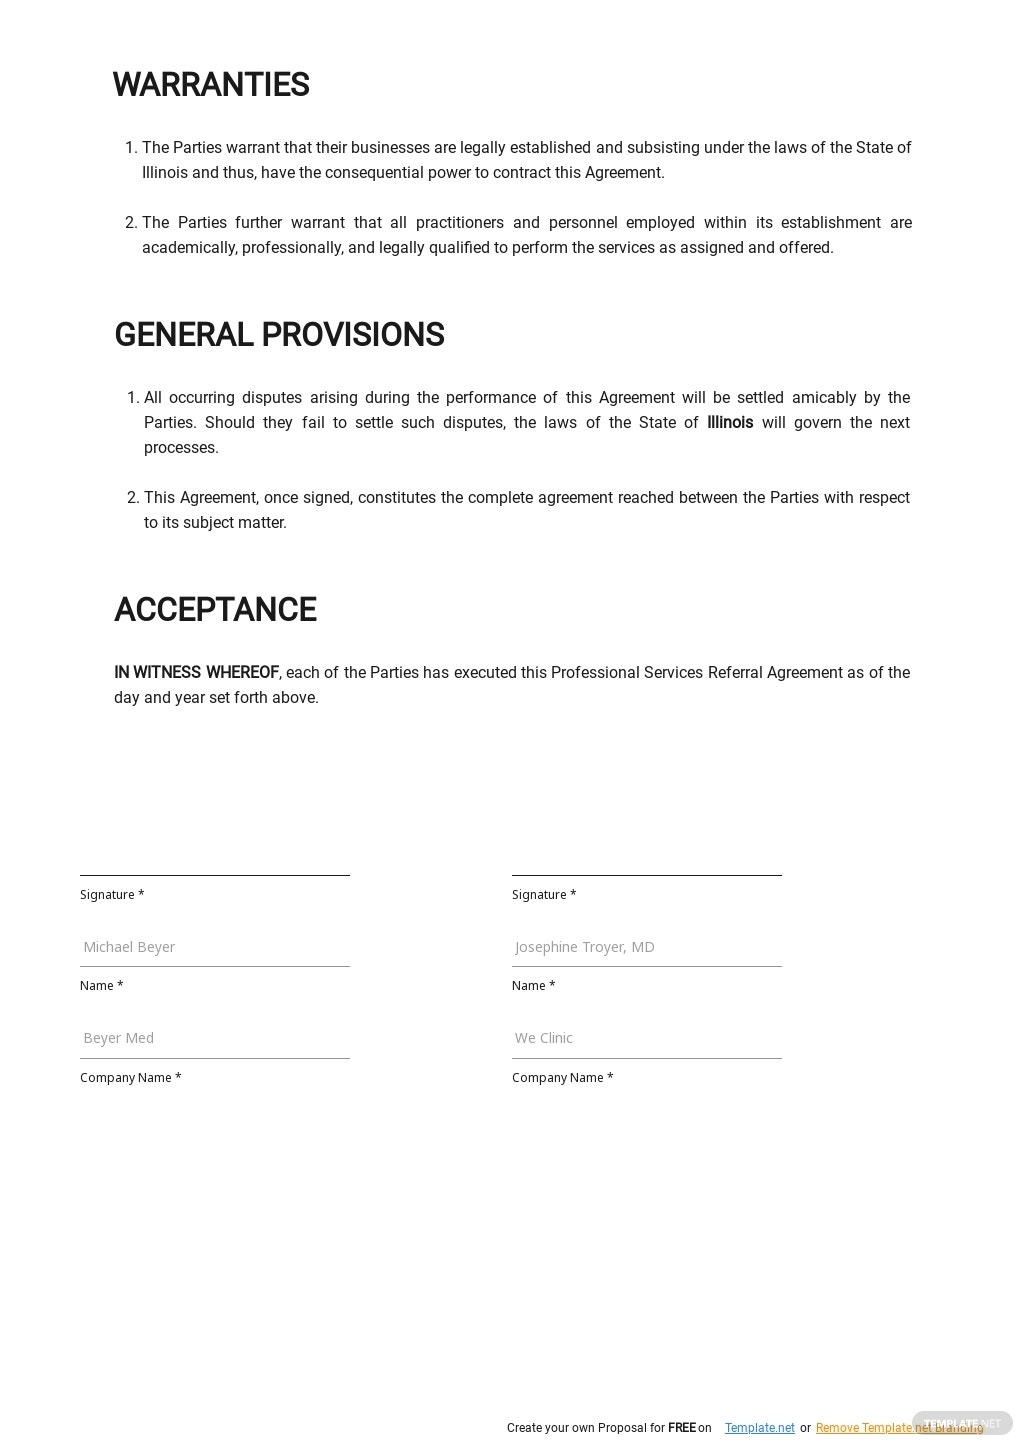 Professional Services Referral Agreement Template 2.jpe